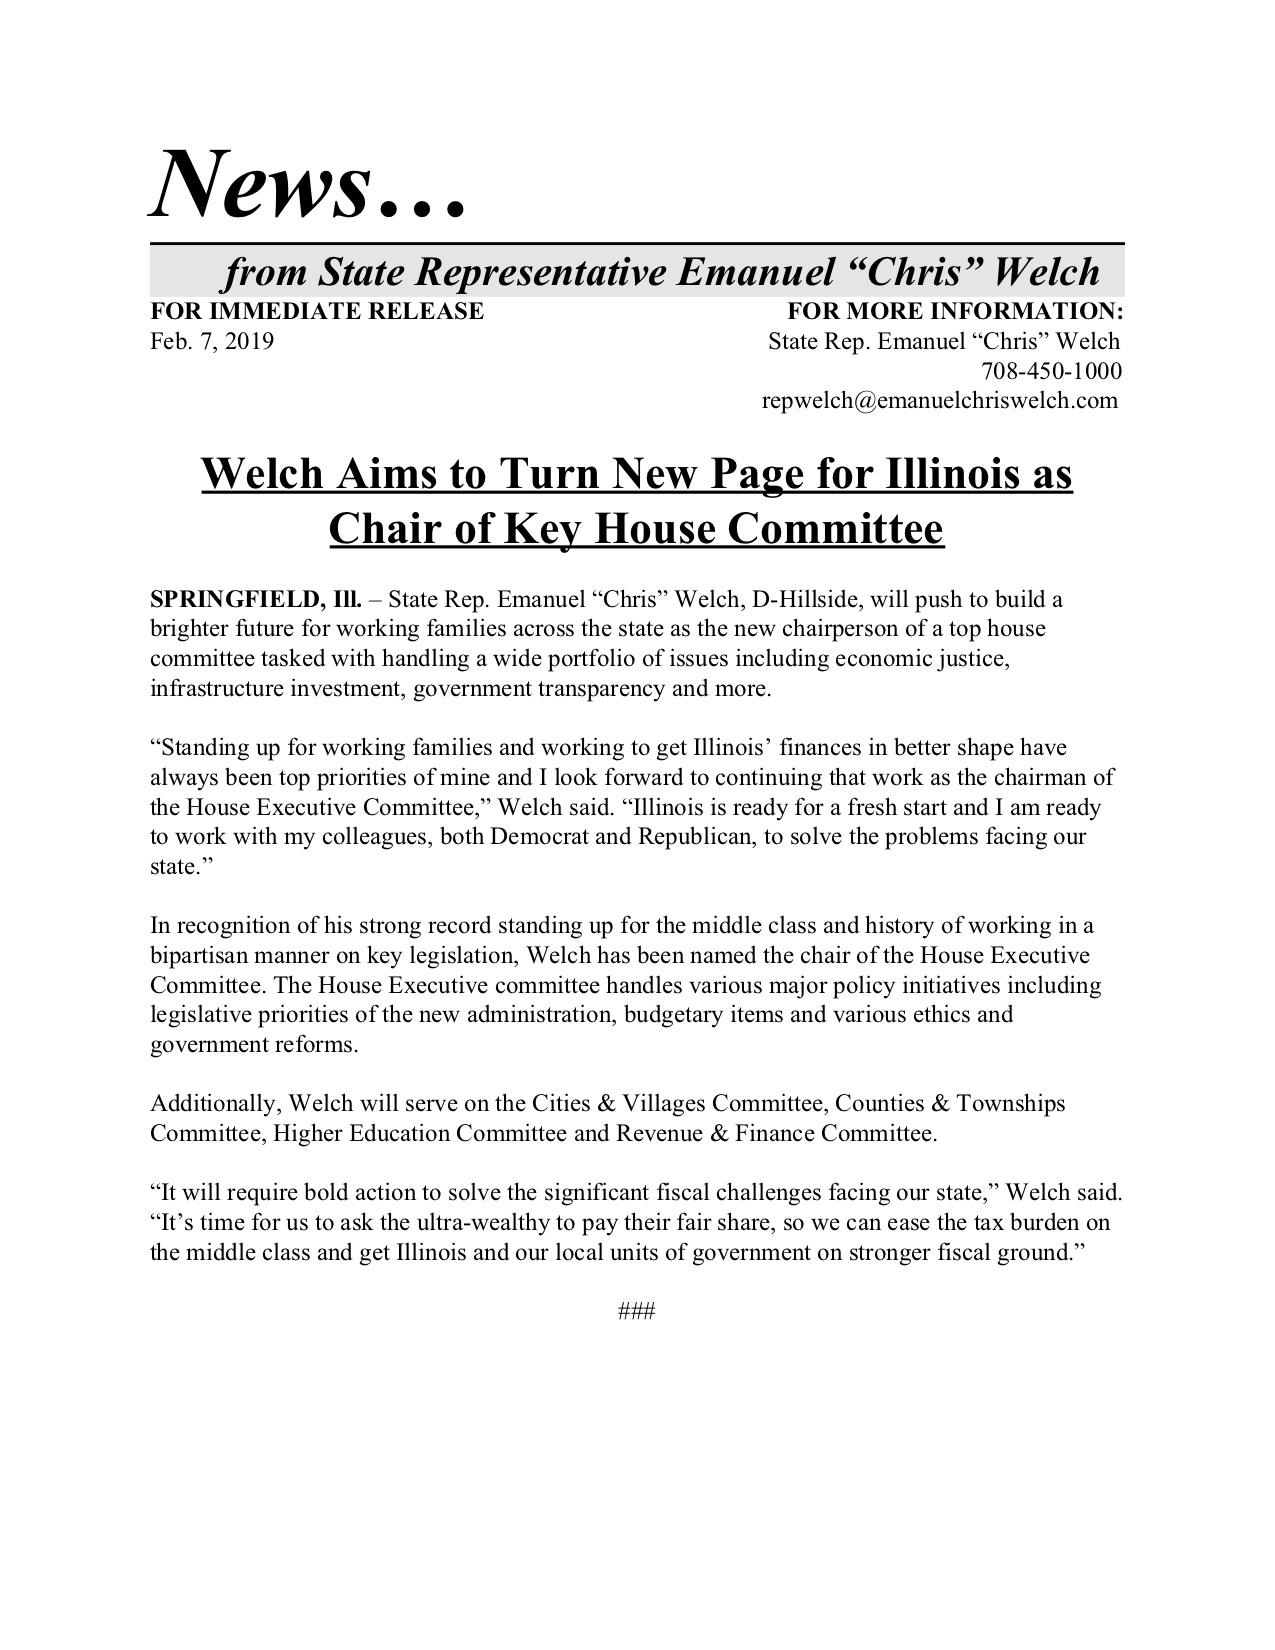 Welch Aims to Turn New Page for Illinois as Chair of Key House Committee  (February 7, 2019)